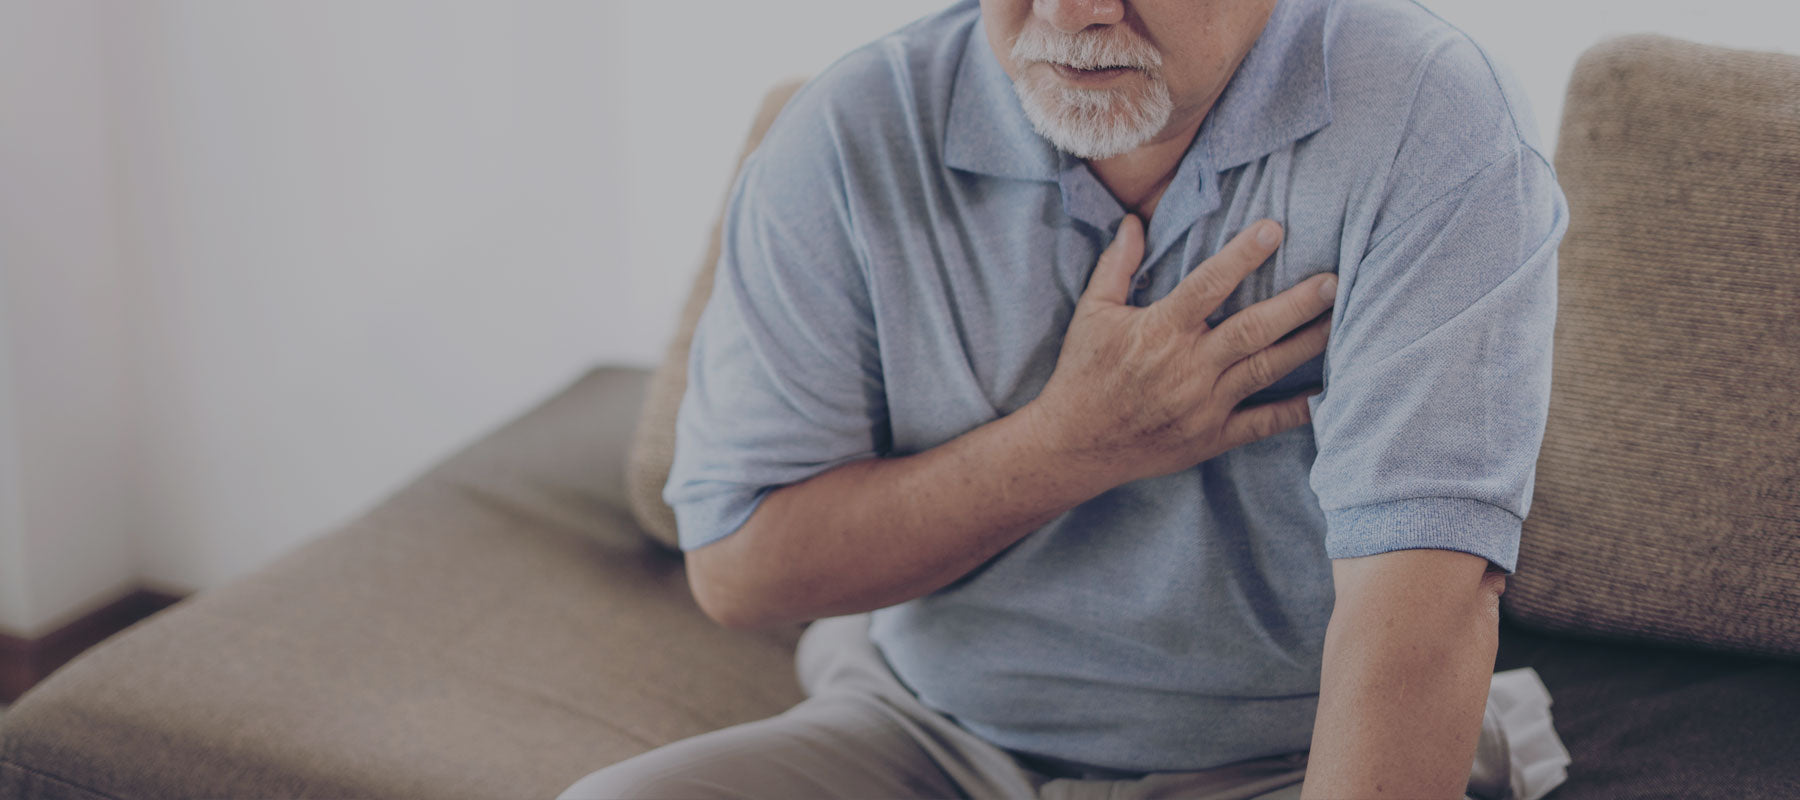 What Causes Heartburn? (Heartburn Causes & Symptoms)